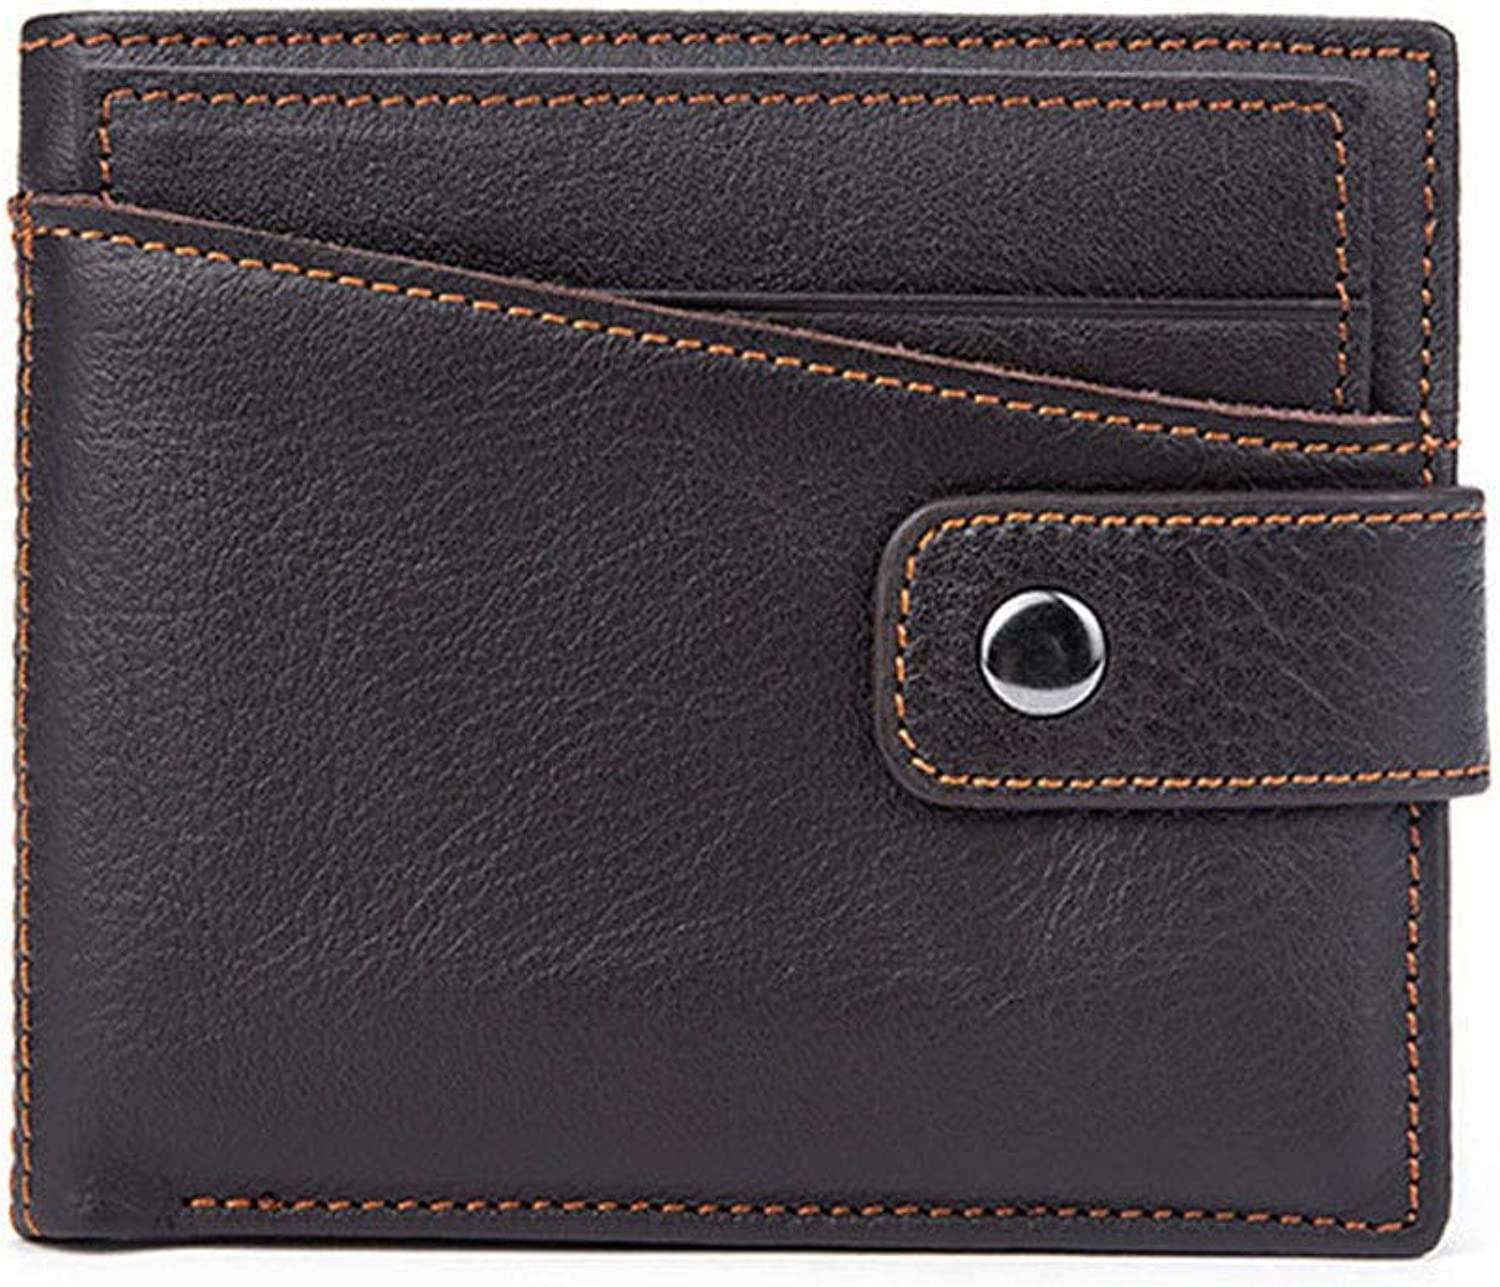 - Men's Short Leather Leather Leather Wallet, Retro Ultra Light Mini Coin Purse (color   Brown) 35a08b